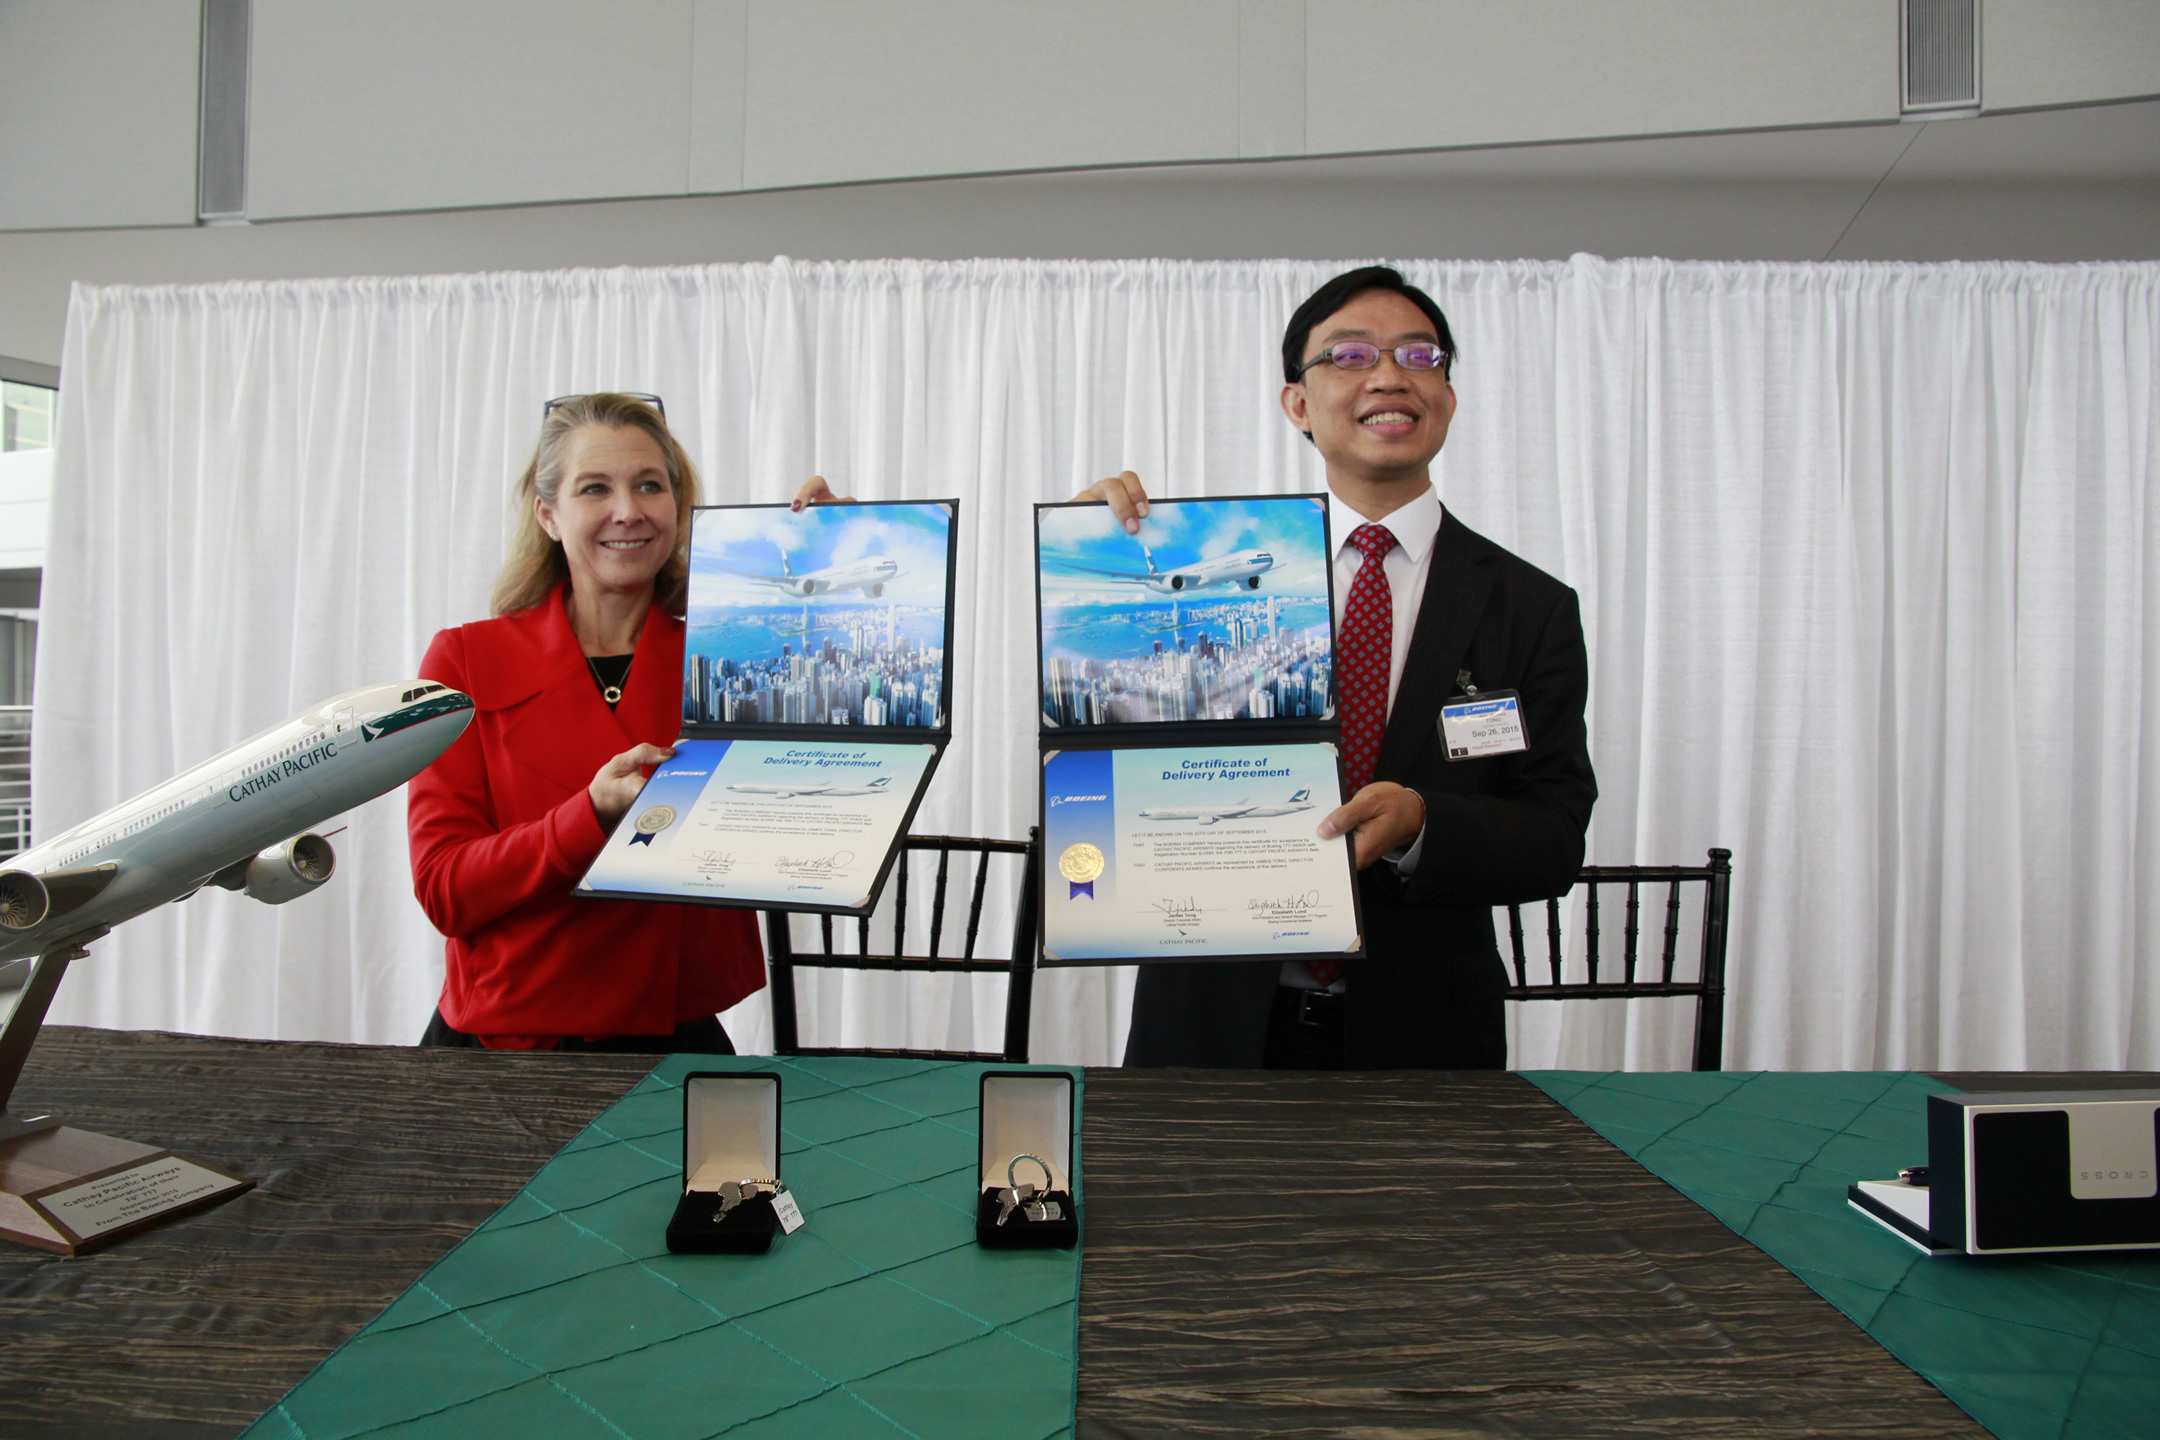 Ms Elizabeth H Lund, Vice President and General Manager, 777 Program and Everett Site, Boeing Commercial Airplanes (left) and Mr James Tong, Director Corporate Affairs, Cathay Pacific Airways at the signing ceremony for Cathay Pacific's 70th 777 aircraft. Cathay Pacific took delivery of the 777-300ER aircraft on 26 September 2015 and is Asia's largest operator of the 777 fleet.